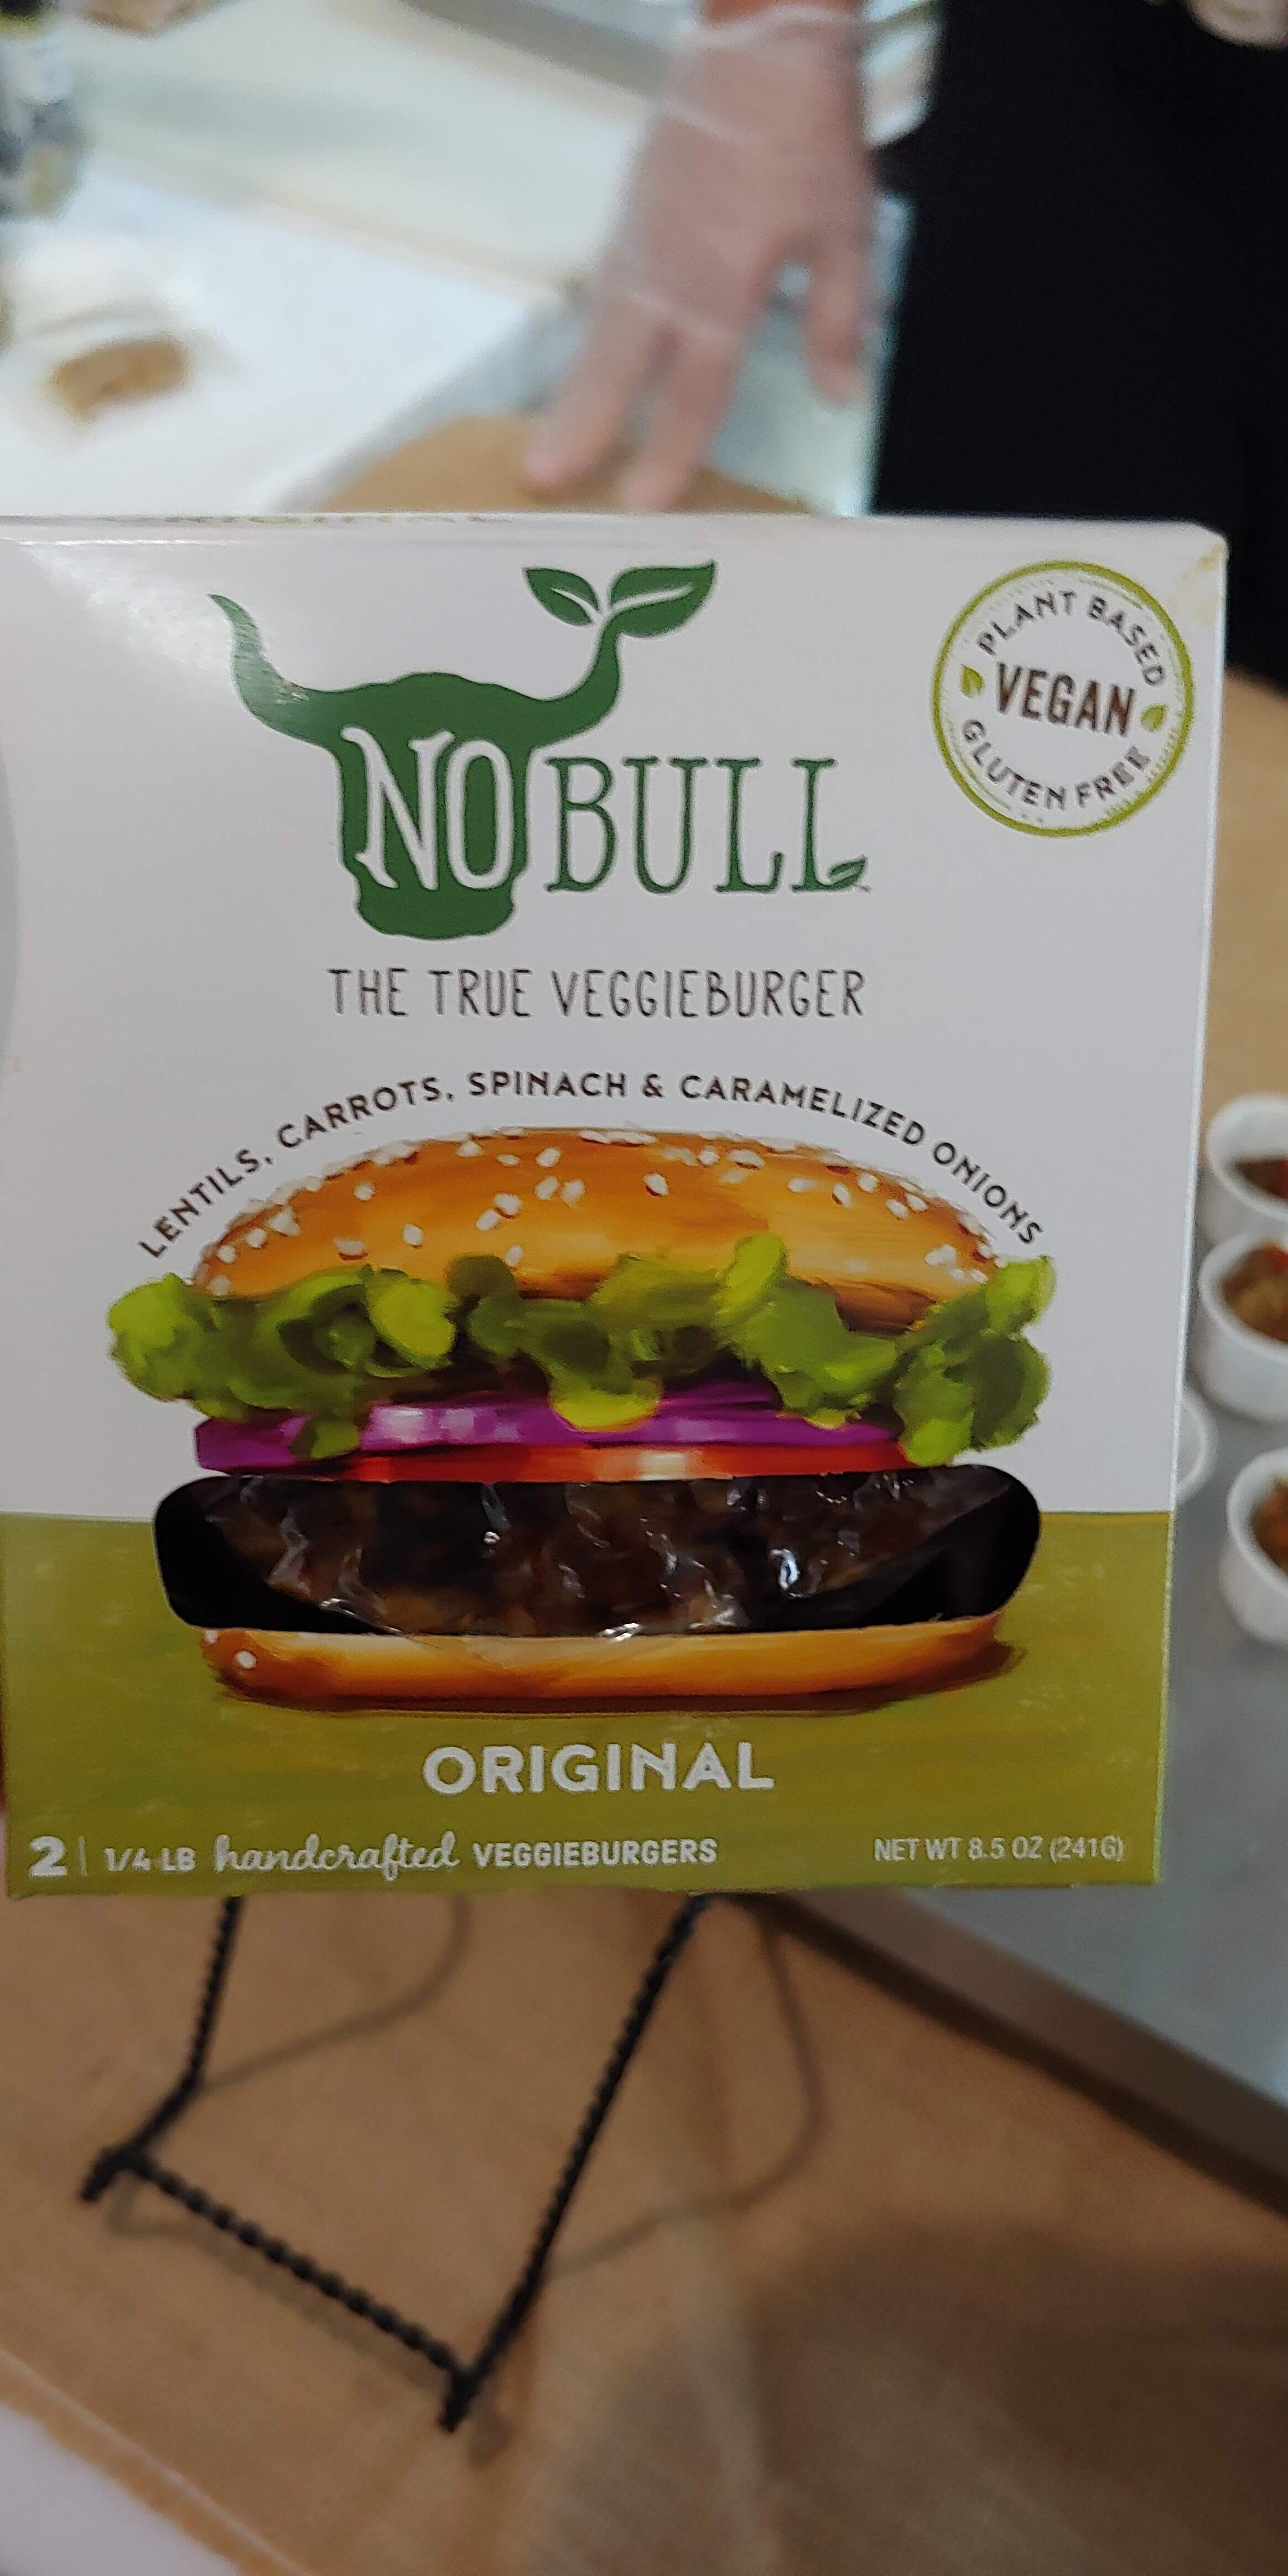 Whole food delicious burgers